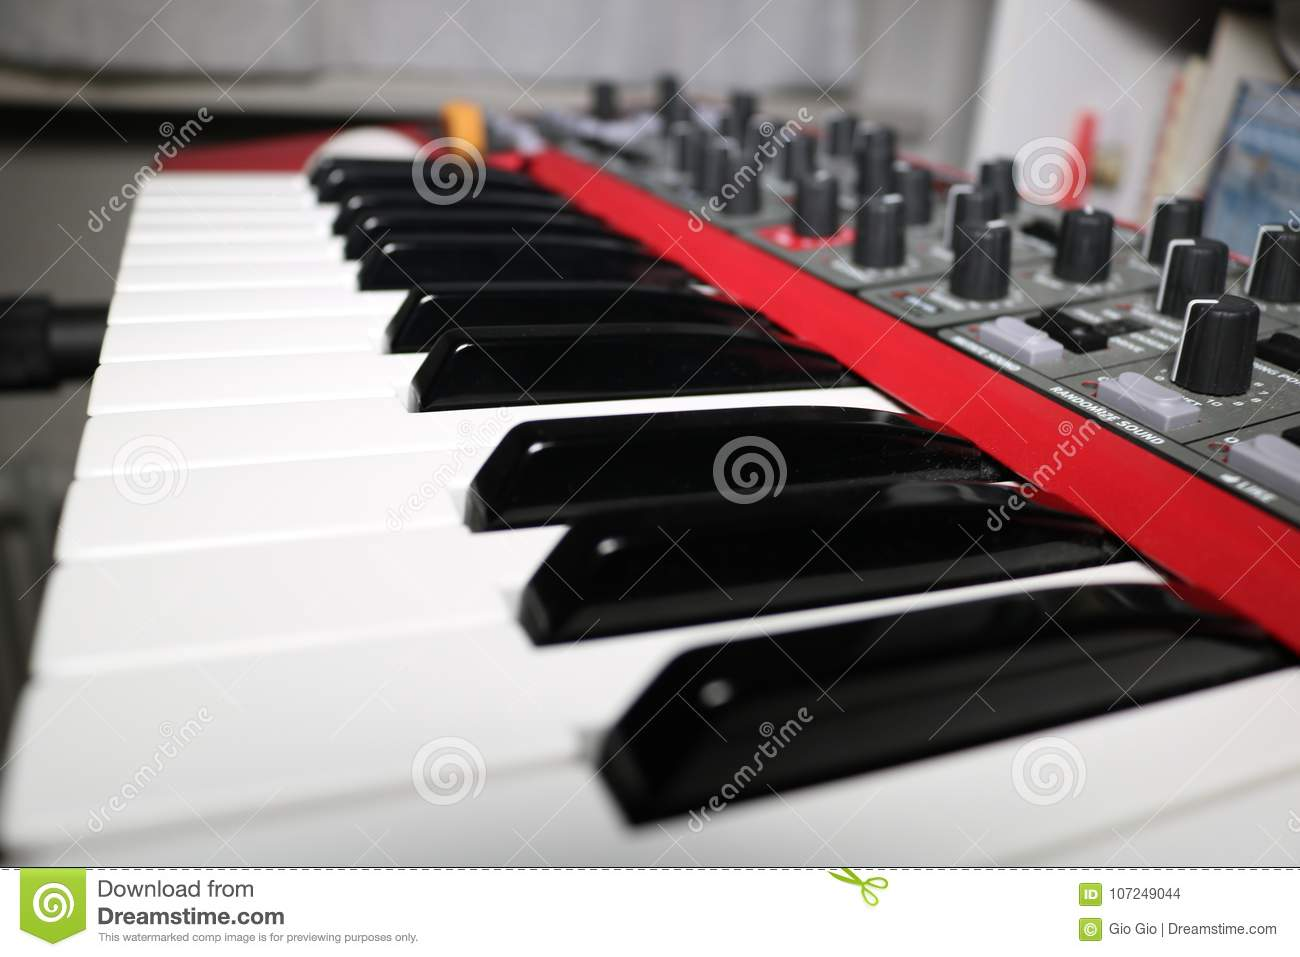 Synthesizer Keyboard Close Up In A Room Stock Photo - Image of song